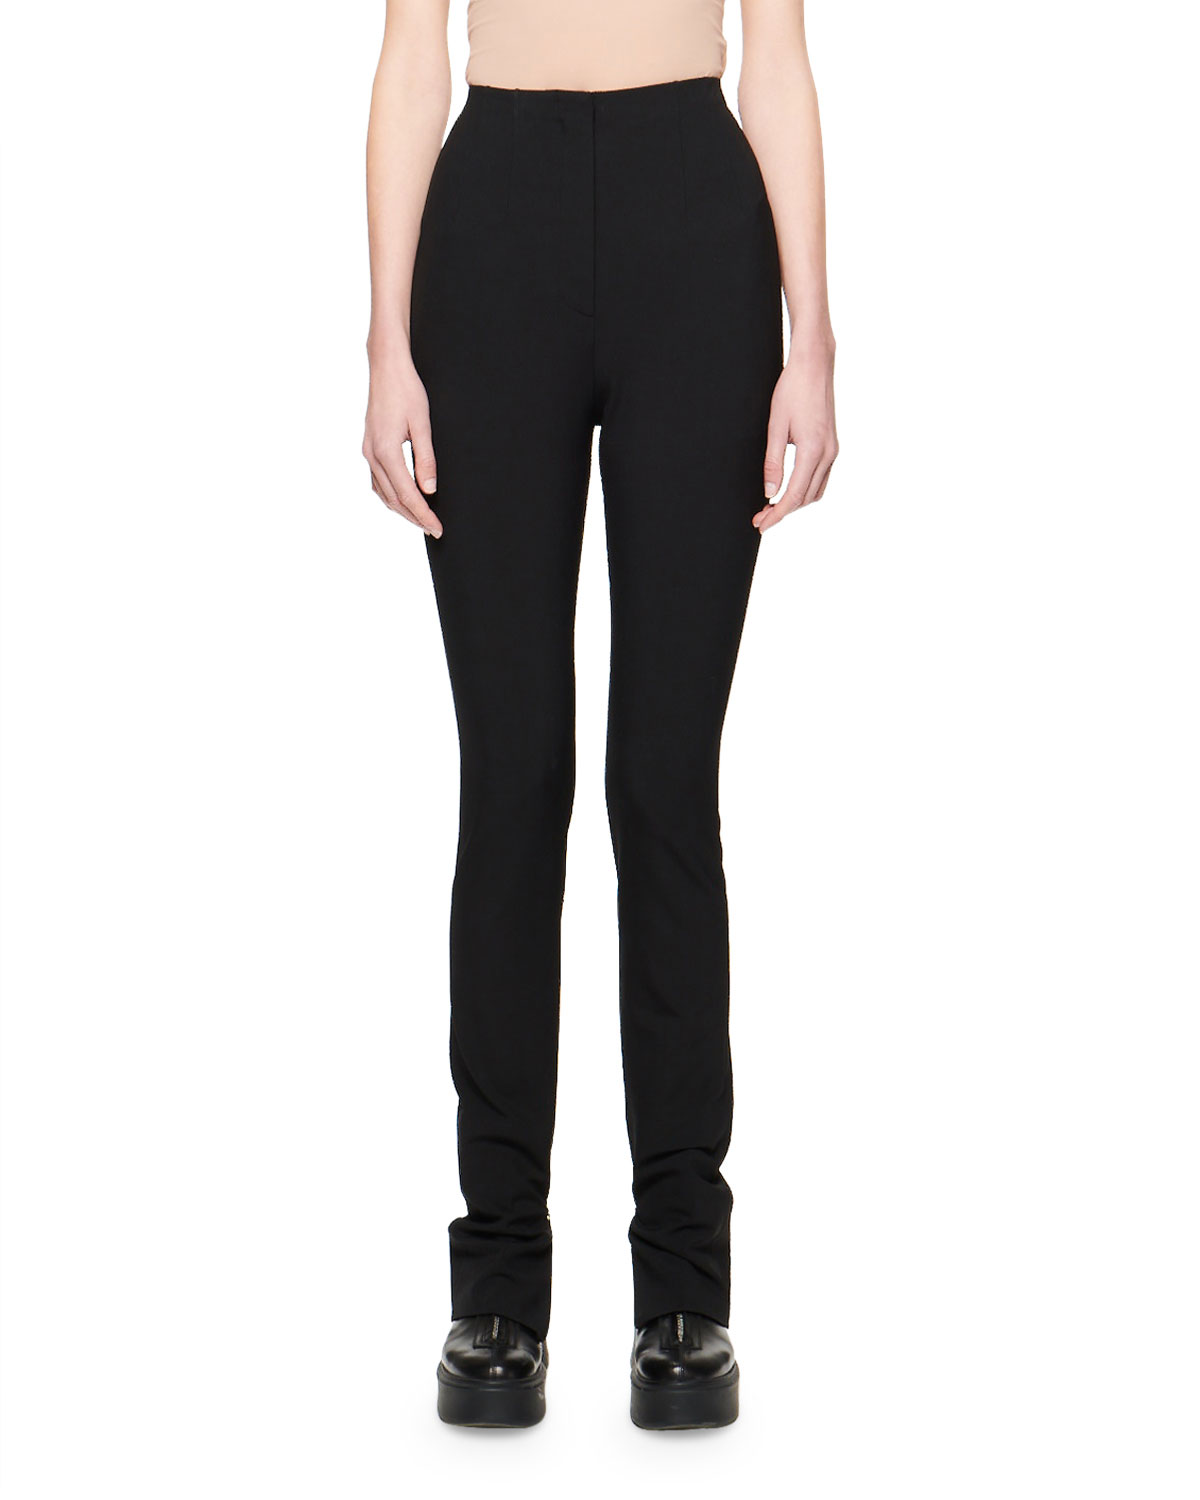 Exact Product: Corso Bi-Stretch Wool Pants, Brand: The Row, Available on: bergdorfgoodman.com, Price: $990